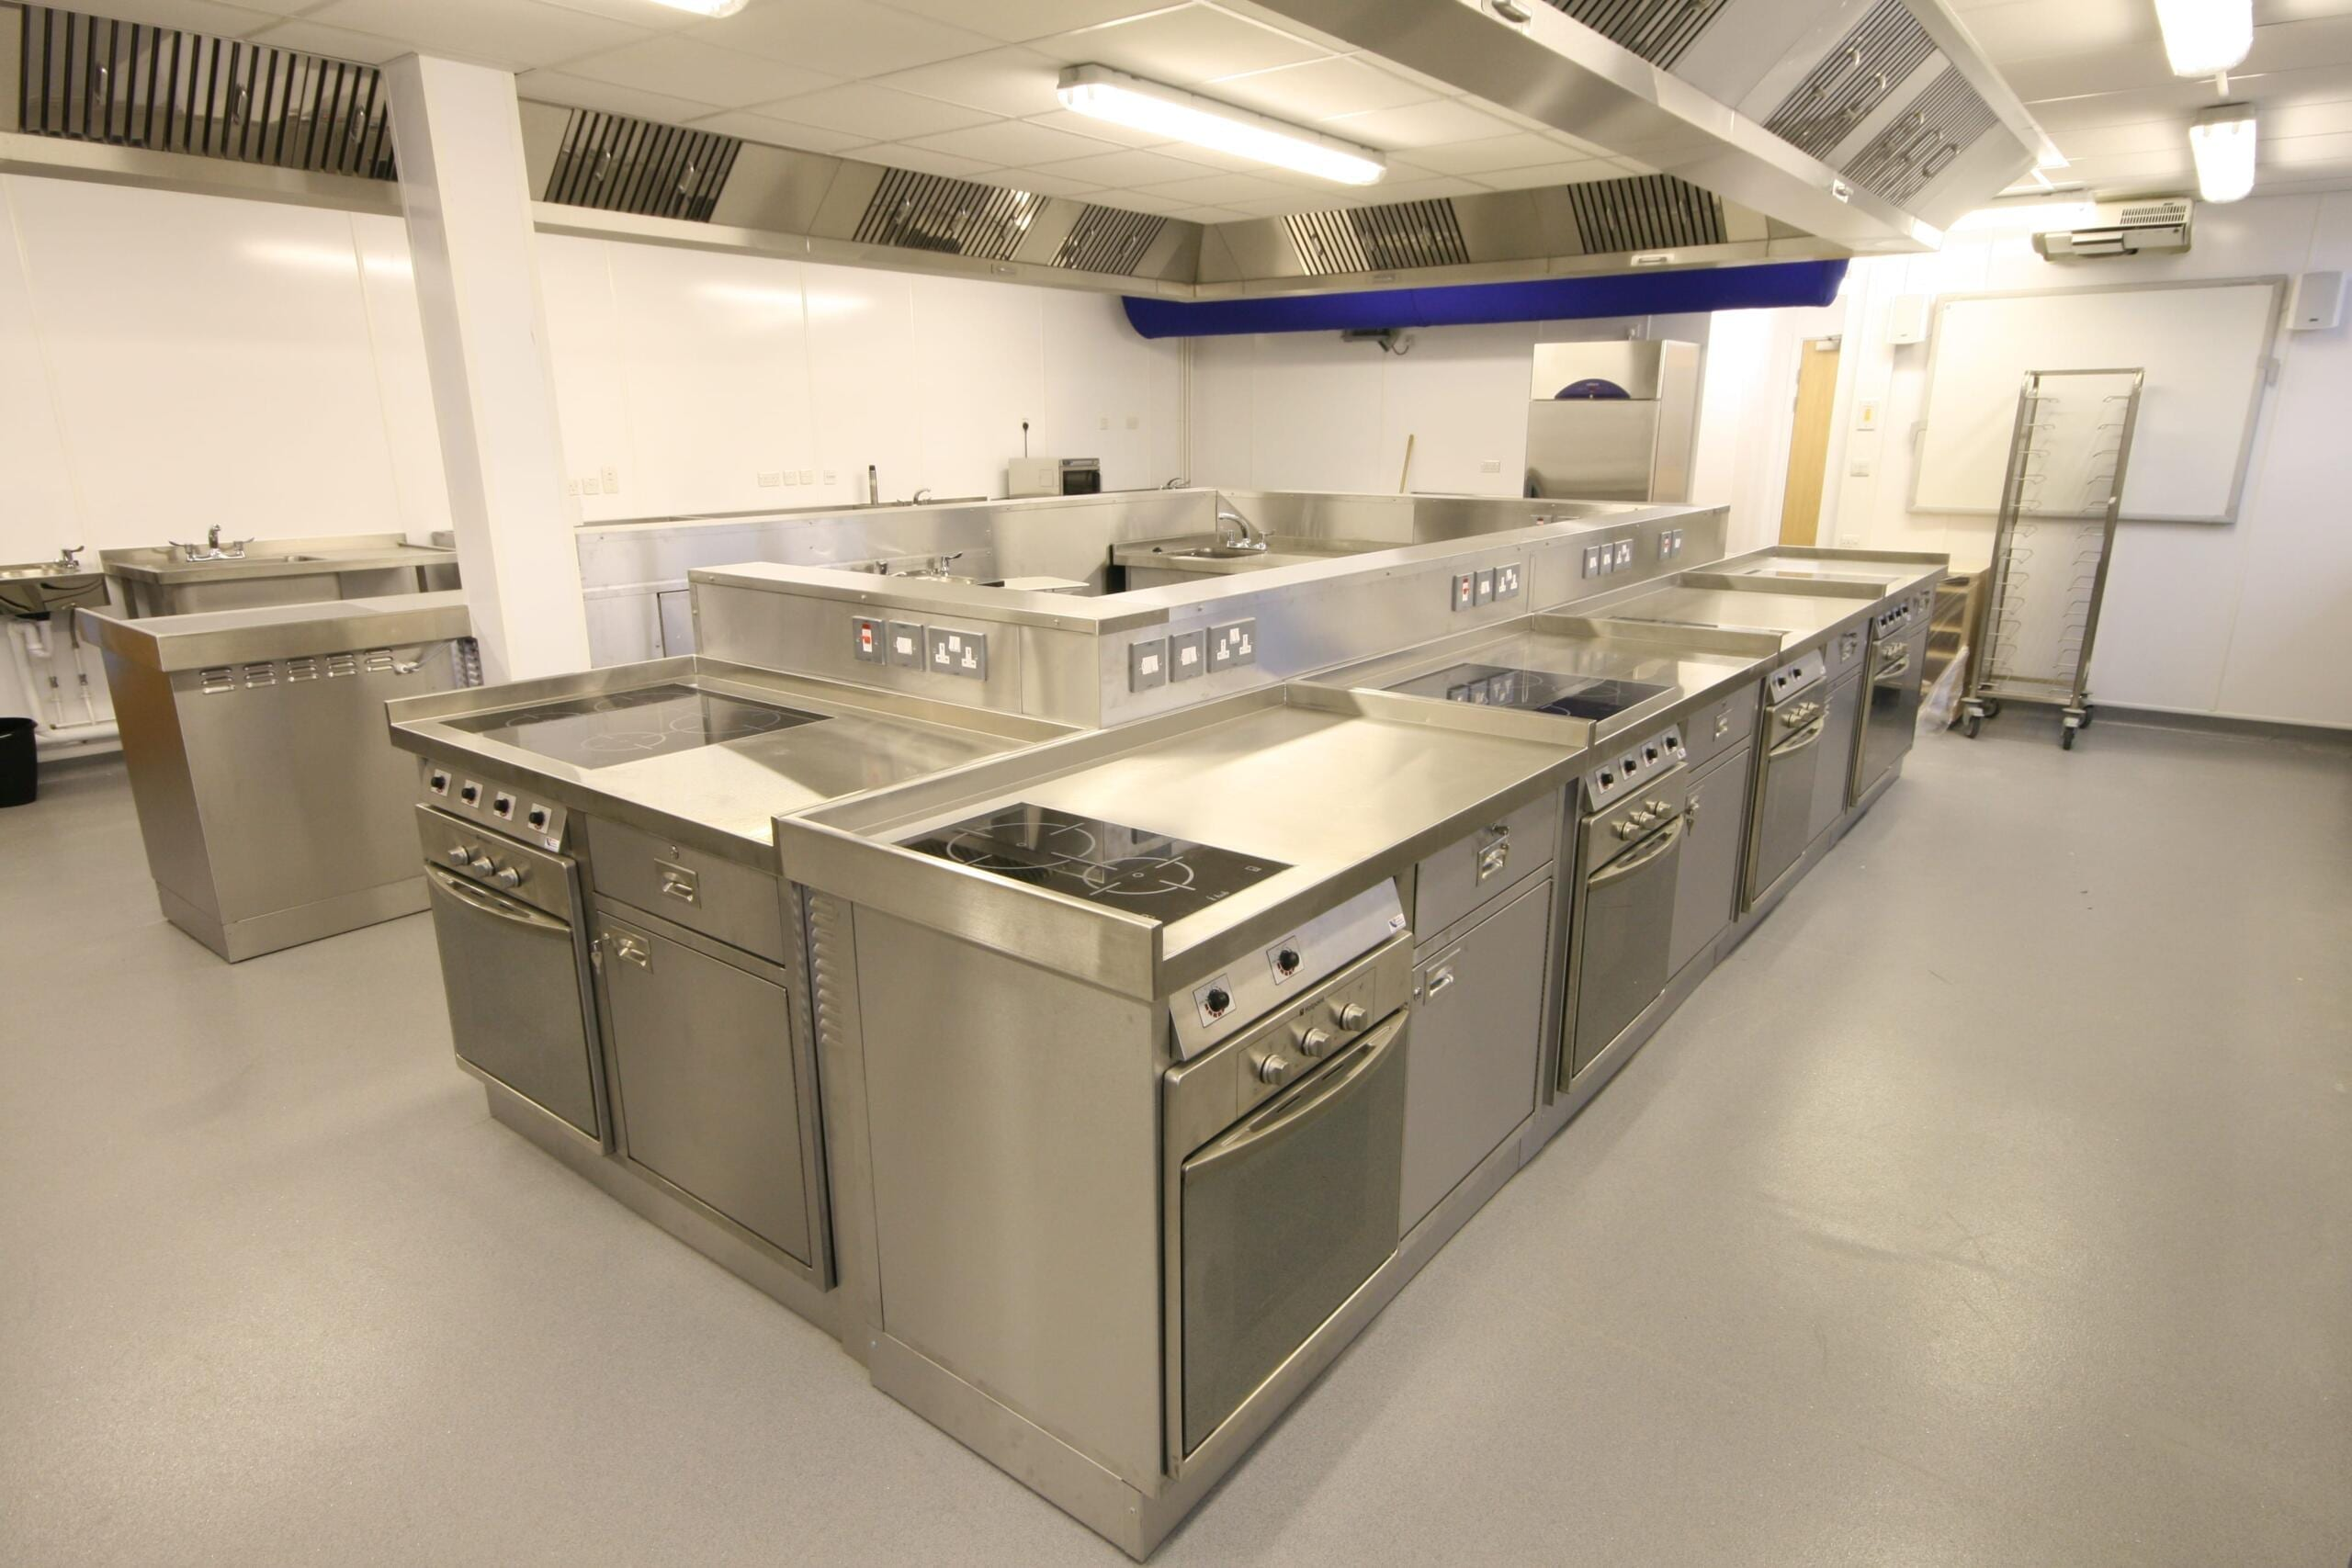 Commercial Kitchen And Oven Installation For Training And Service Launchpad Tewkesbury